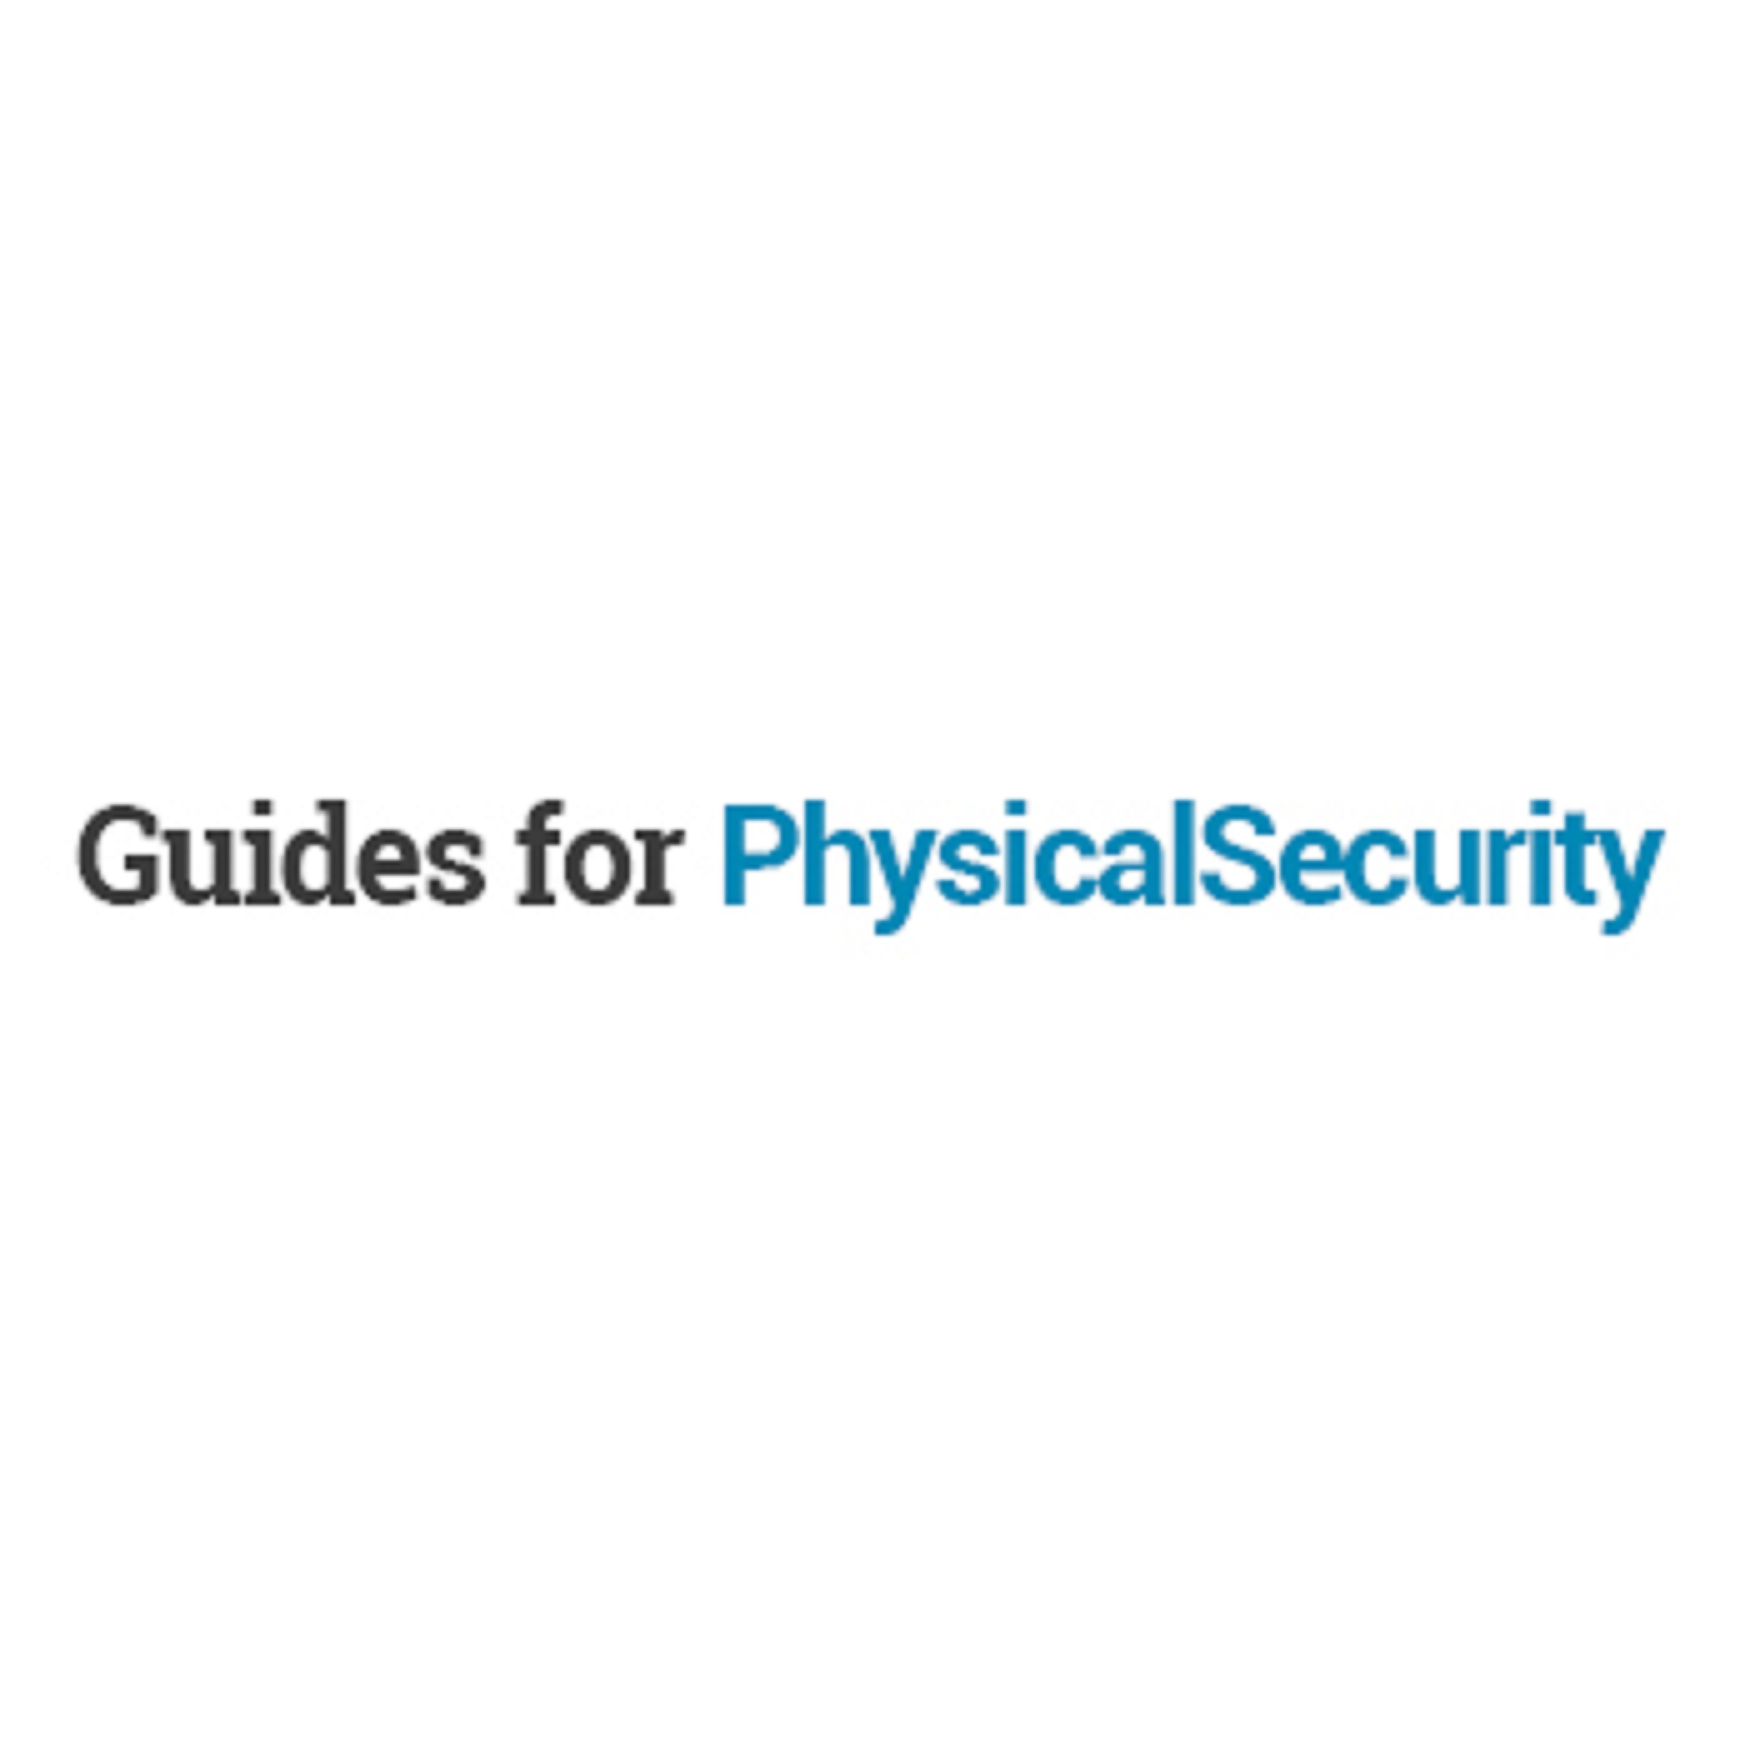 Guides for Physical Security